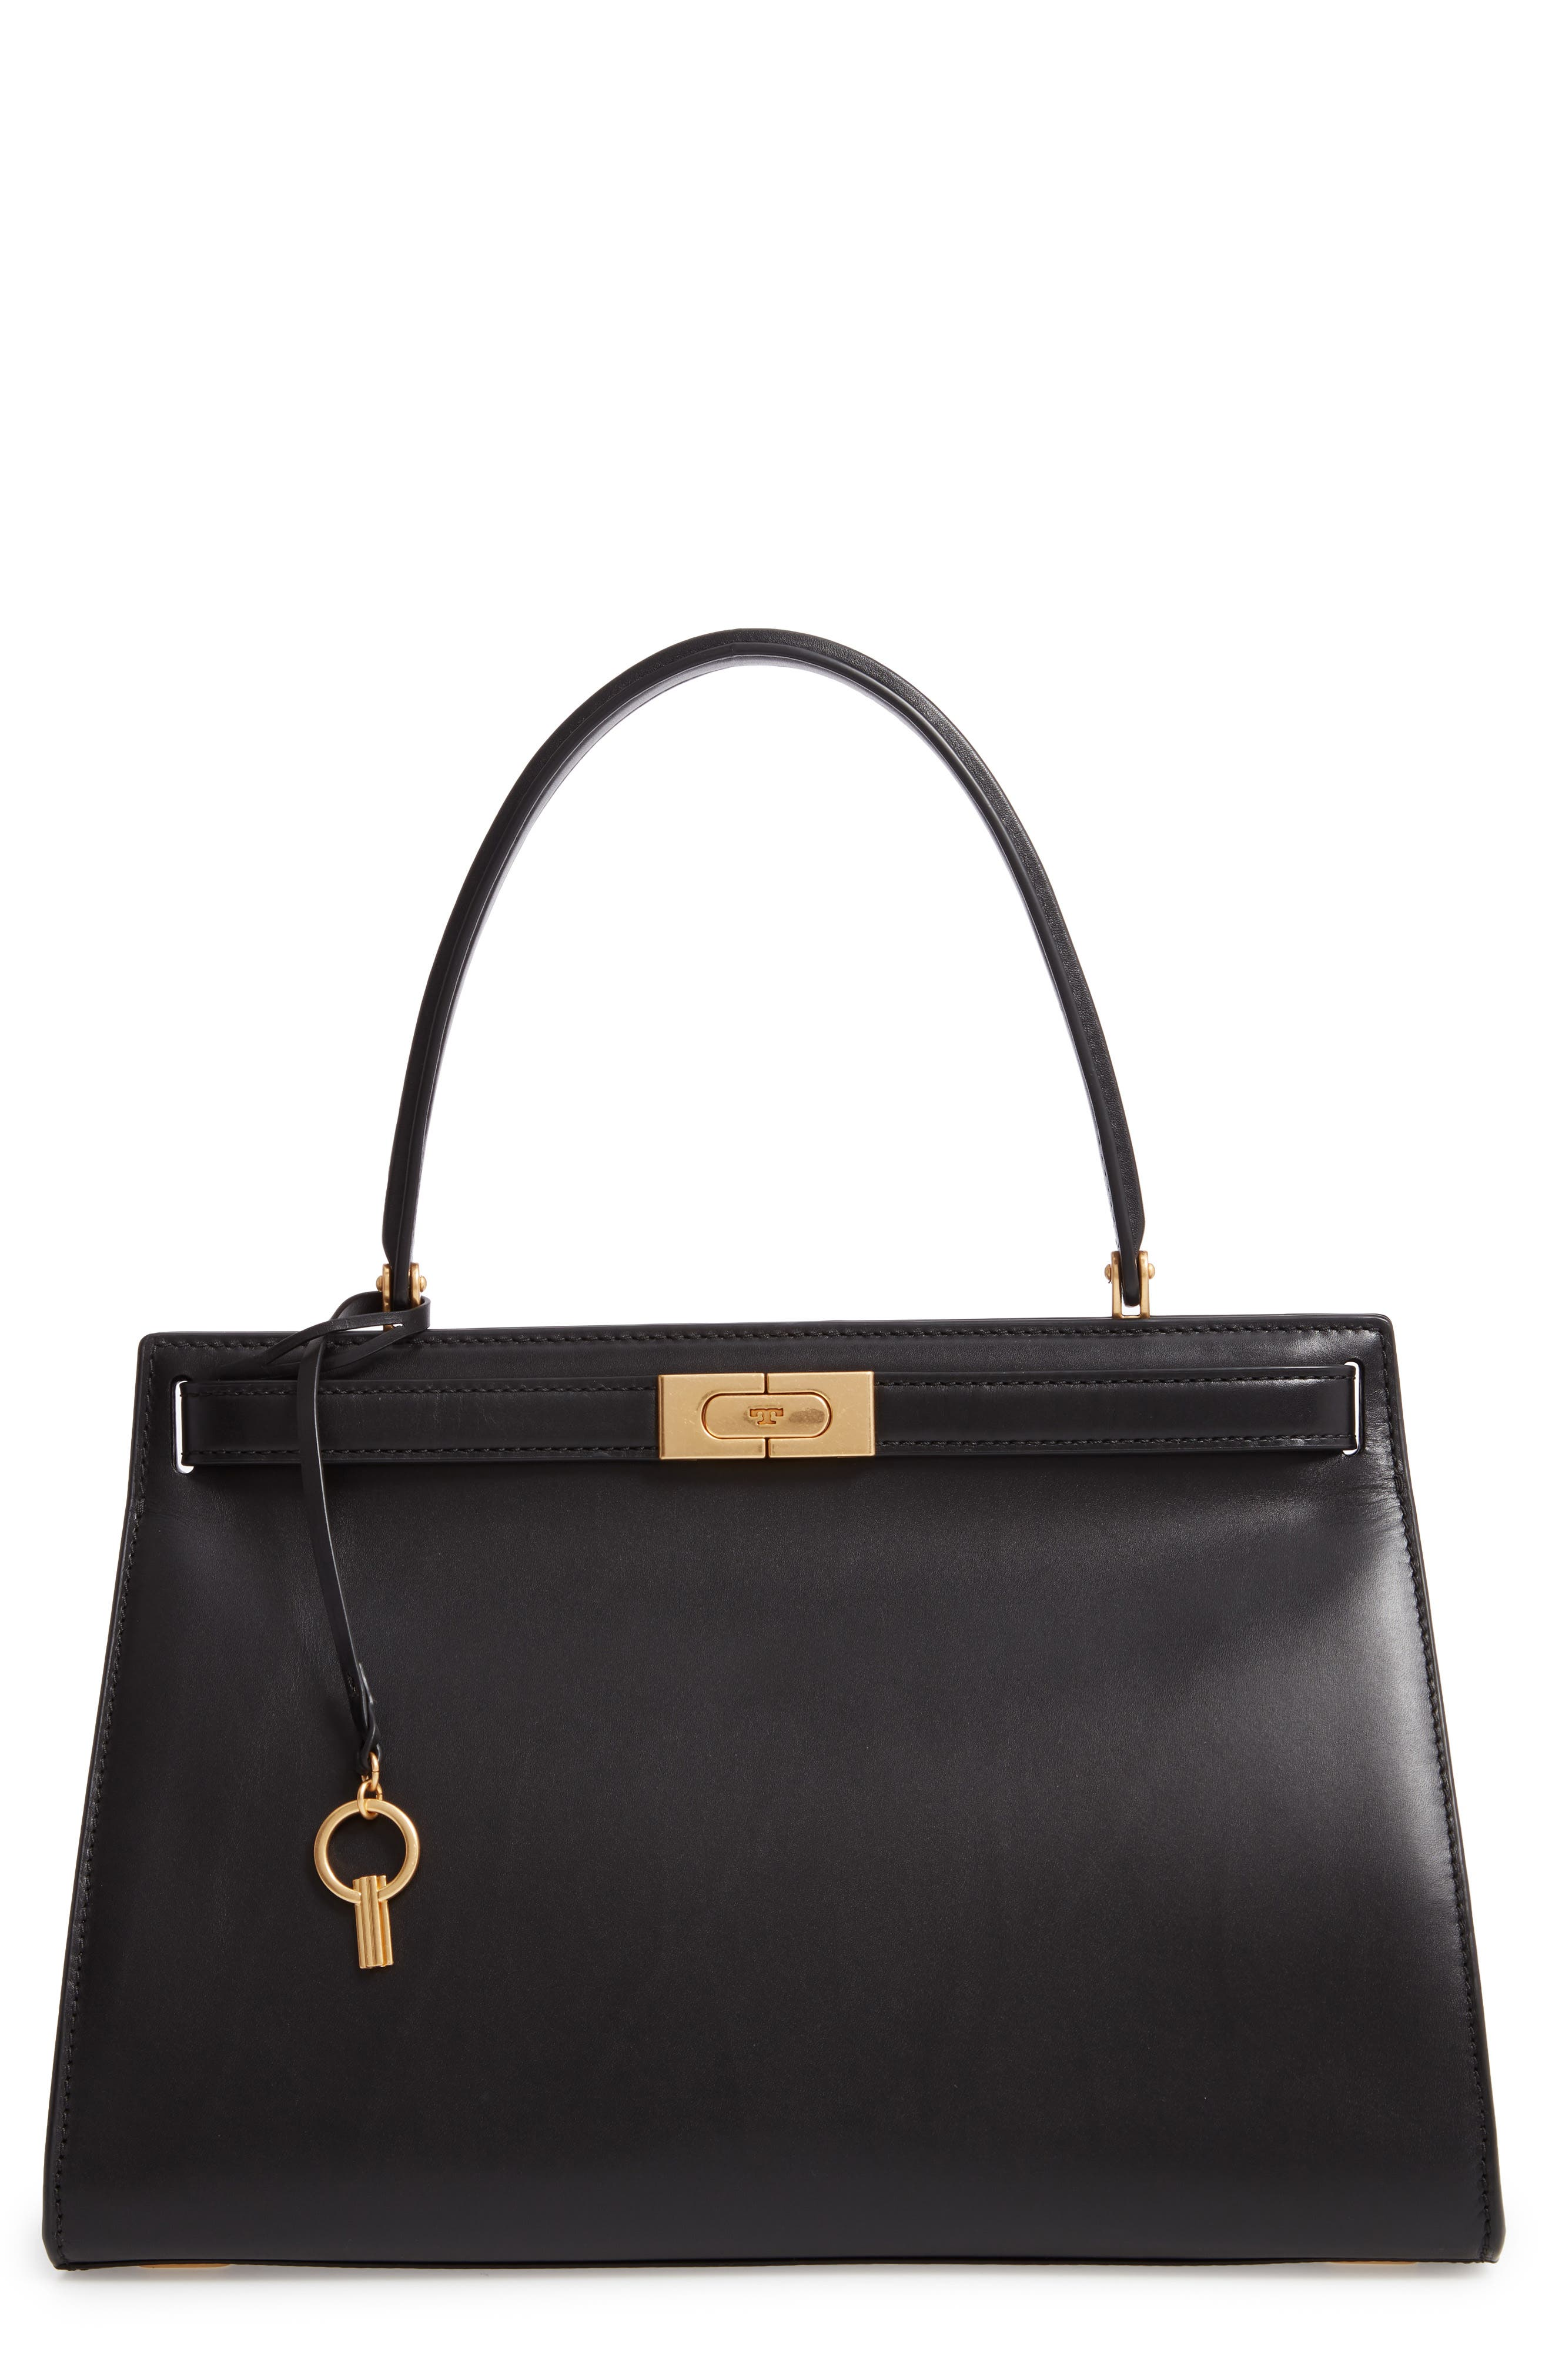 Lee Radziwill Small Leather Satchel,                             Main thumbnail 1, color,                             BLACK